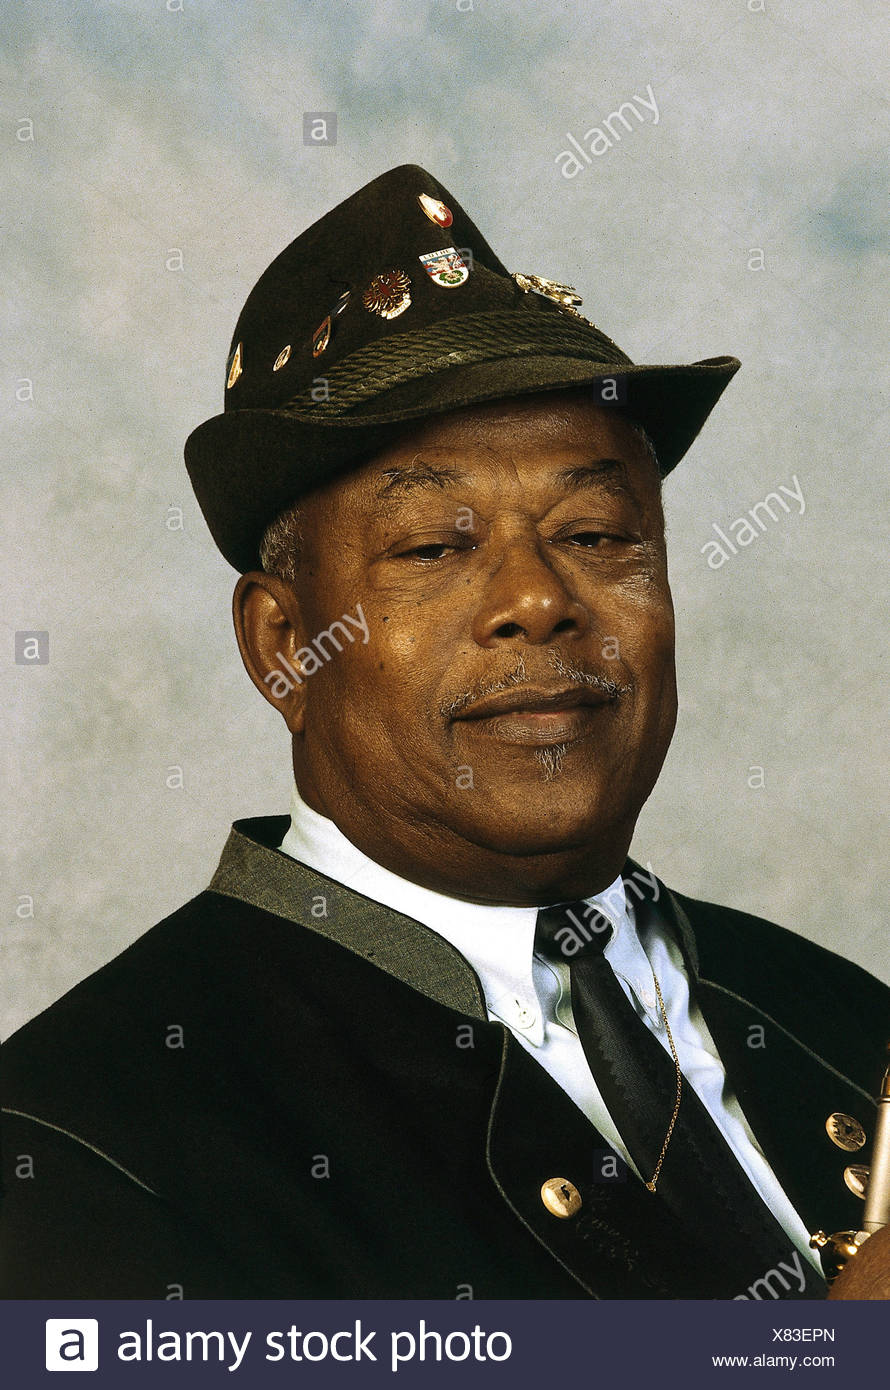 Mo, Billy, 22.2.1923 - 16.7.2004, German musician (jazz trumpeter), born as Peter Mico Joachim on Trinidad, portrait, 1995, Additional-Rights-Clearances-NA - Stock Image